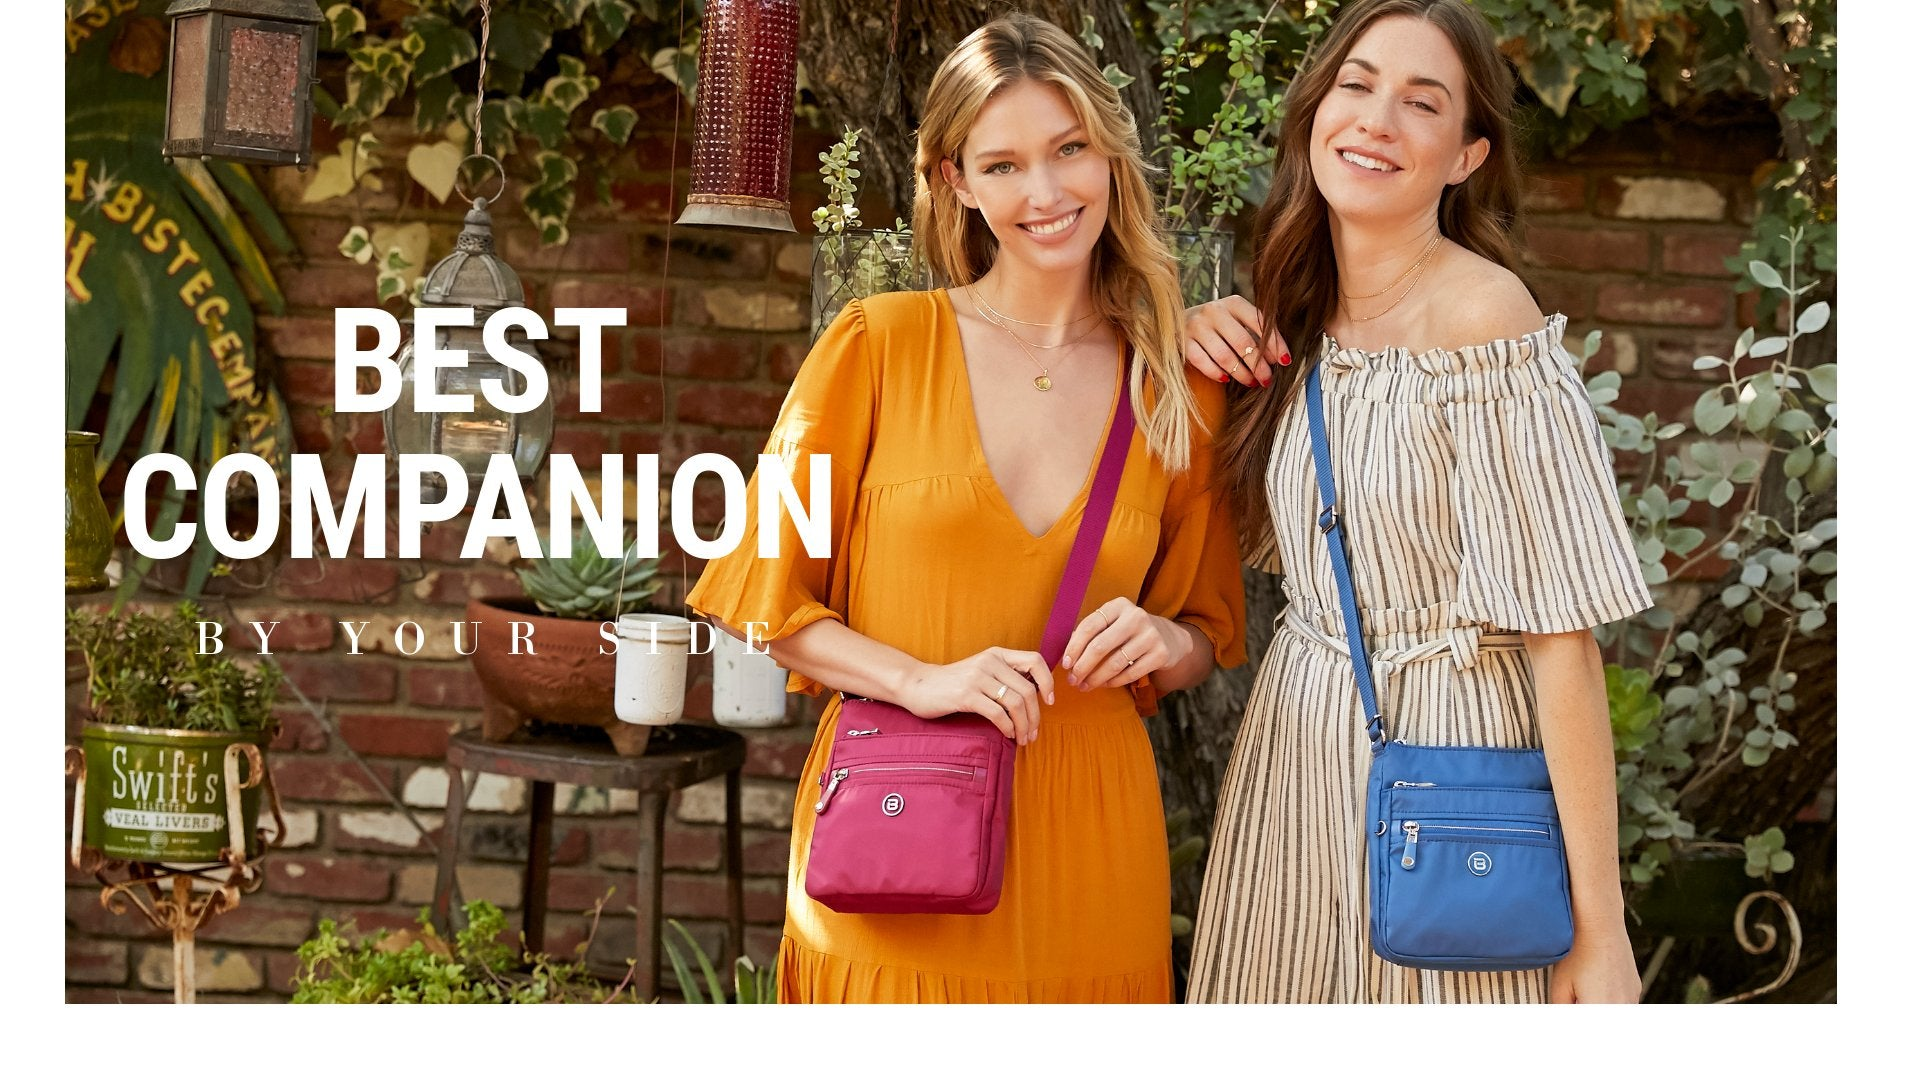 beside-u halloween weekend sale palmyra wristlet jewel blue purple opulence rory red forever young purses fashion handbags designer bags banner